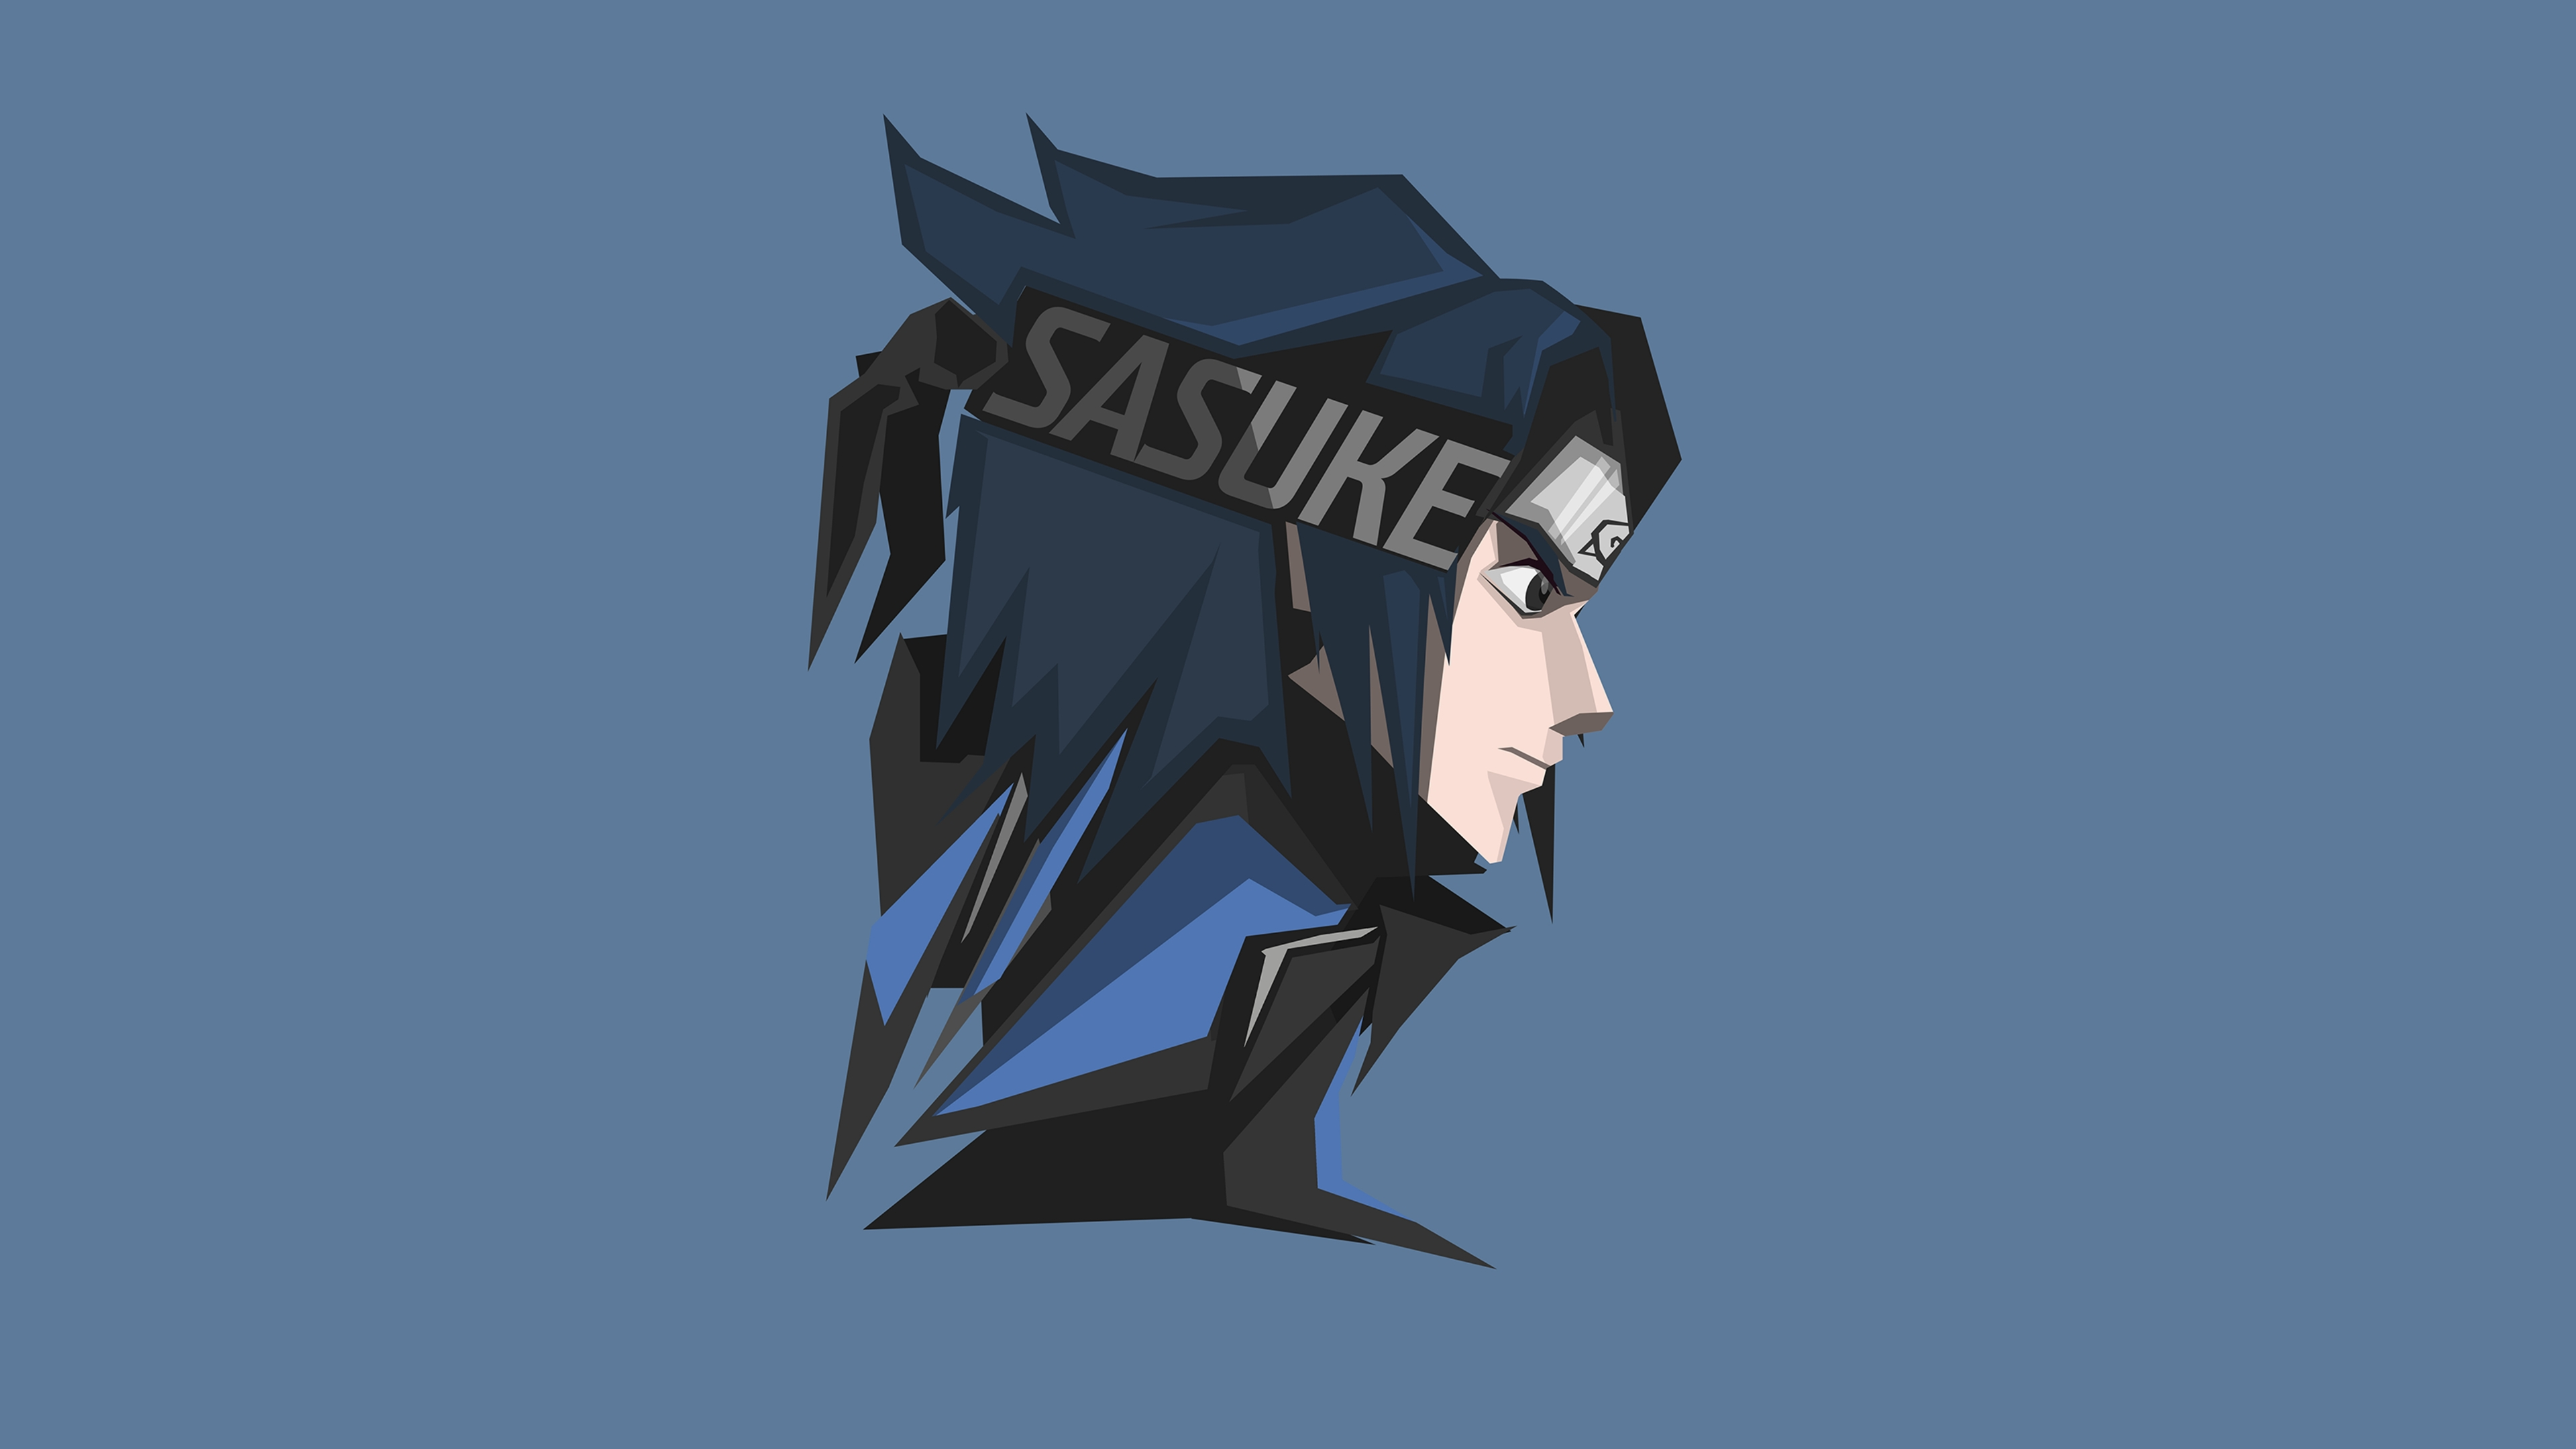 Sasuke Uchiha Illustration Anime Wallpaper 8k Ultra Hd Id 3632